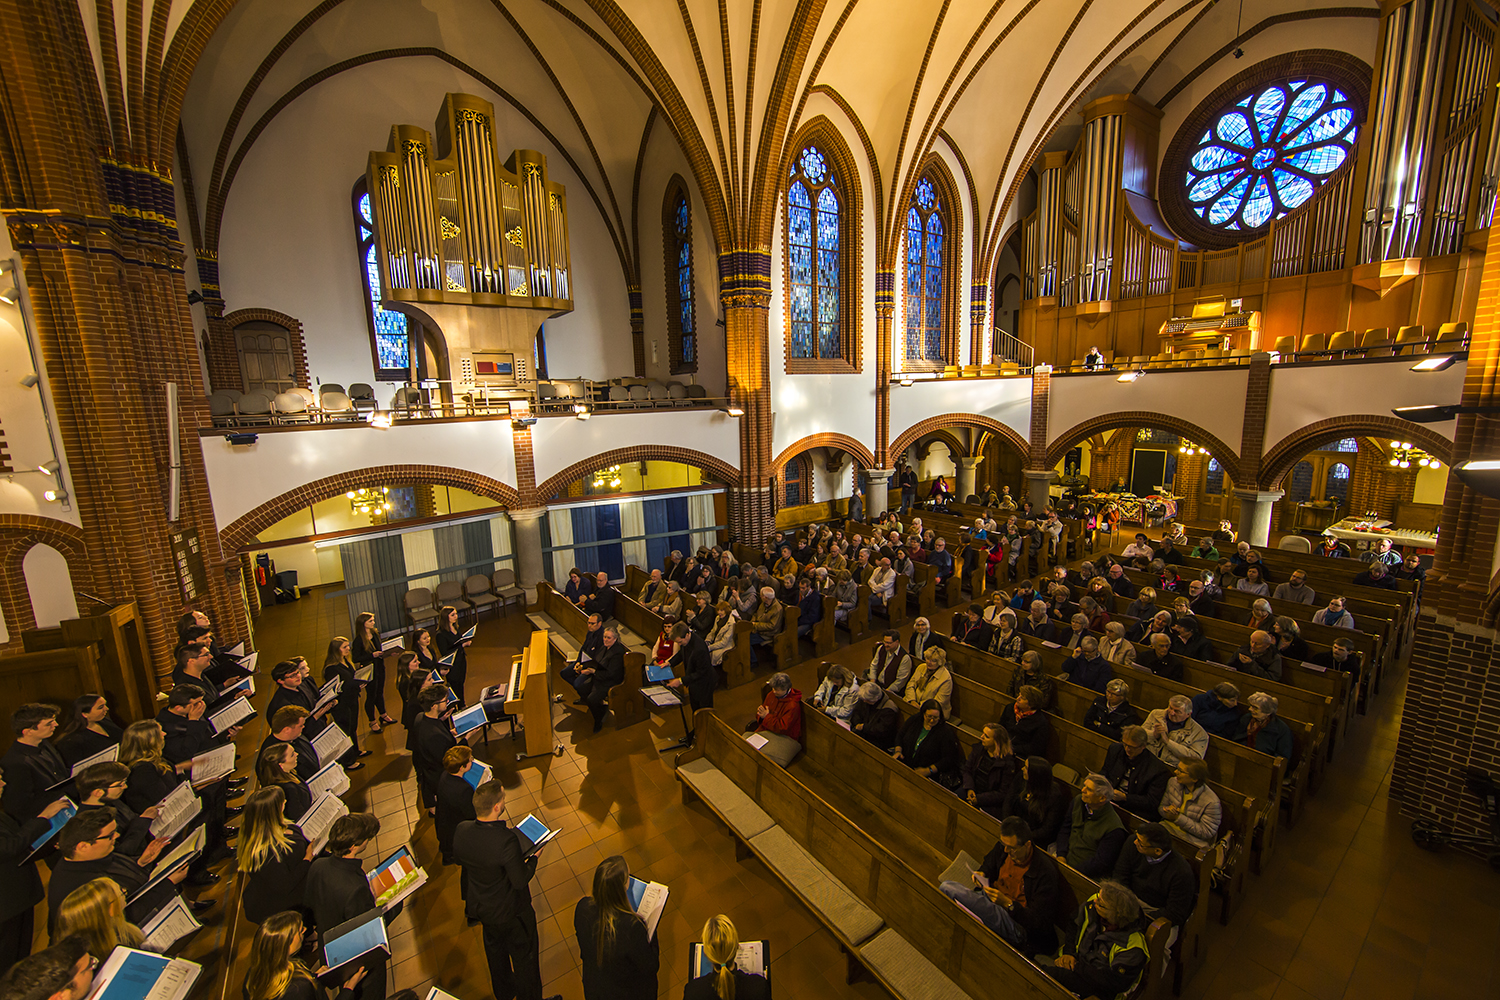 Panoramic photo of choir performing to an audience in a church